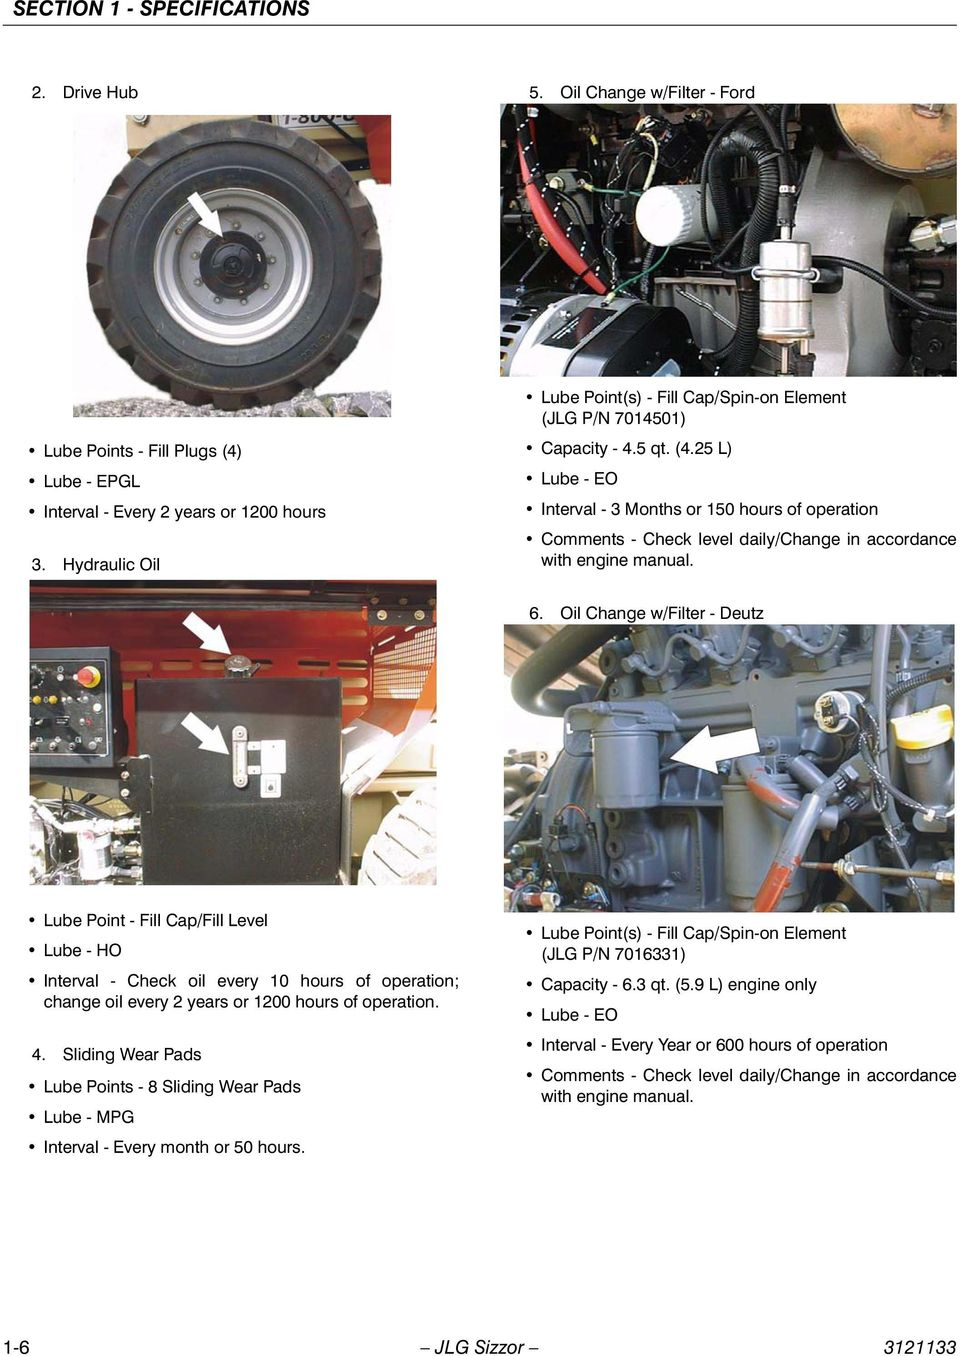 Service Maintenance Manual Models 3394rt 4394rt Prior To S N 200 Eclipse Fuel Filter Location 25 L Lube Eo Interval 3 Months Or 150 Hours Of Operation Comments